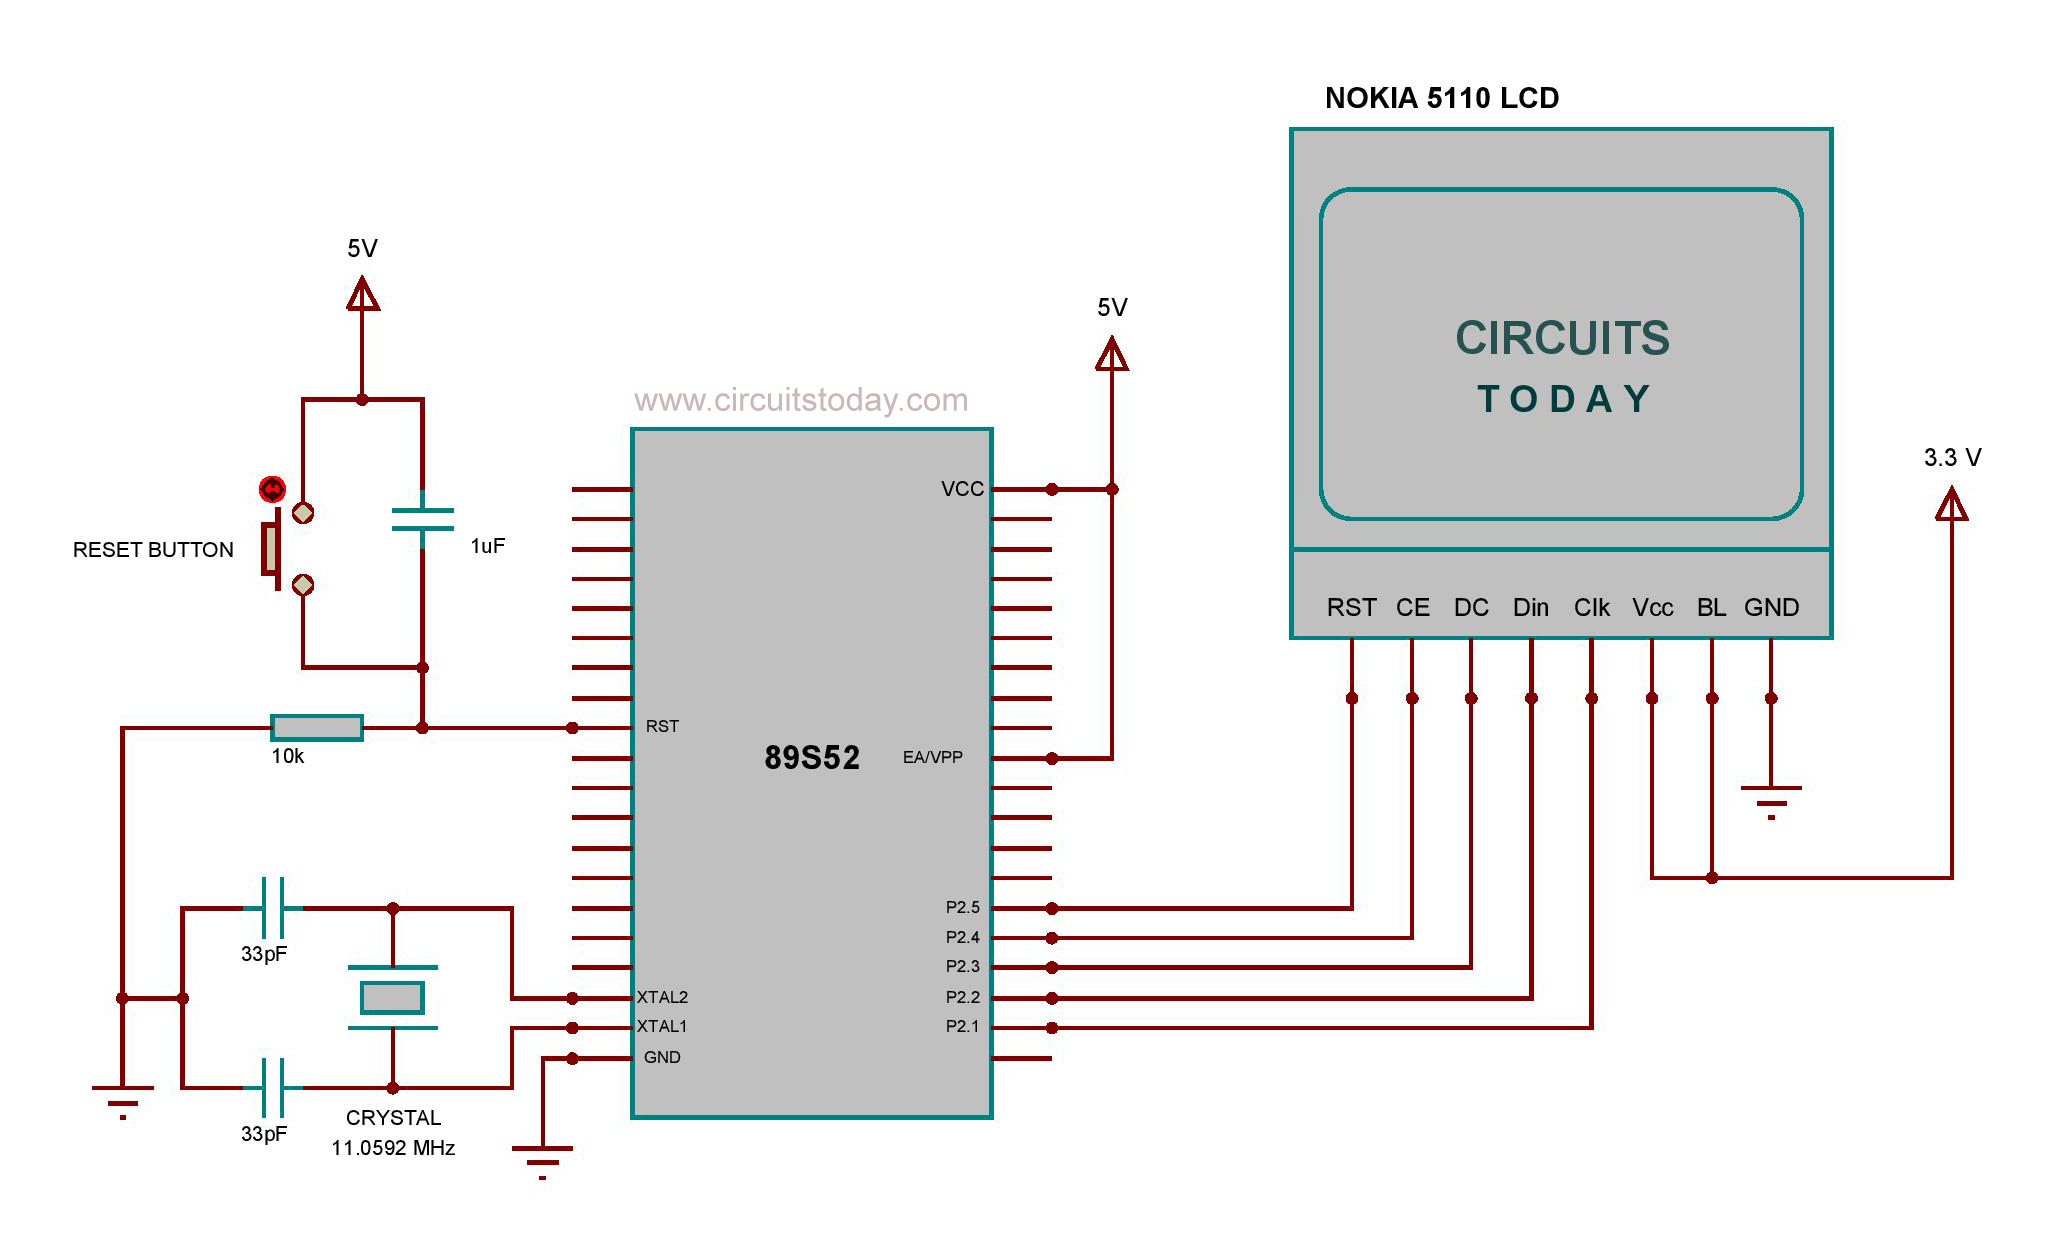 WRG-1615] Nokia X Circuit Diagram on nokia 2600 classic, nokia x2-00, nokia flasher, nokia lumia with flashlight, nokia 1616 keypad problem, nokia solution, nokia 6100i, nokia x1-01 mic jumper,